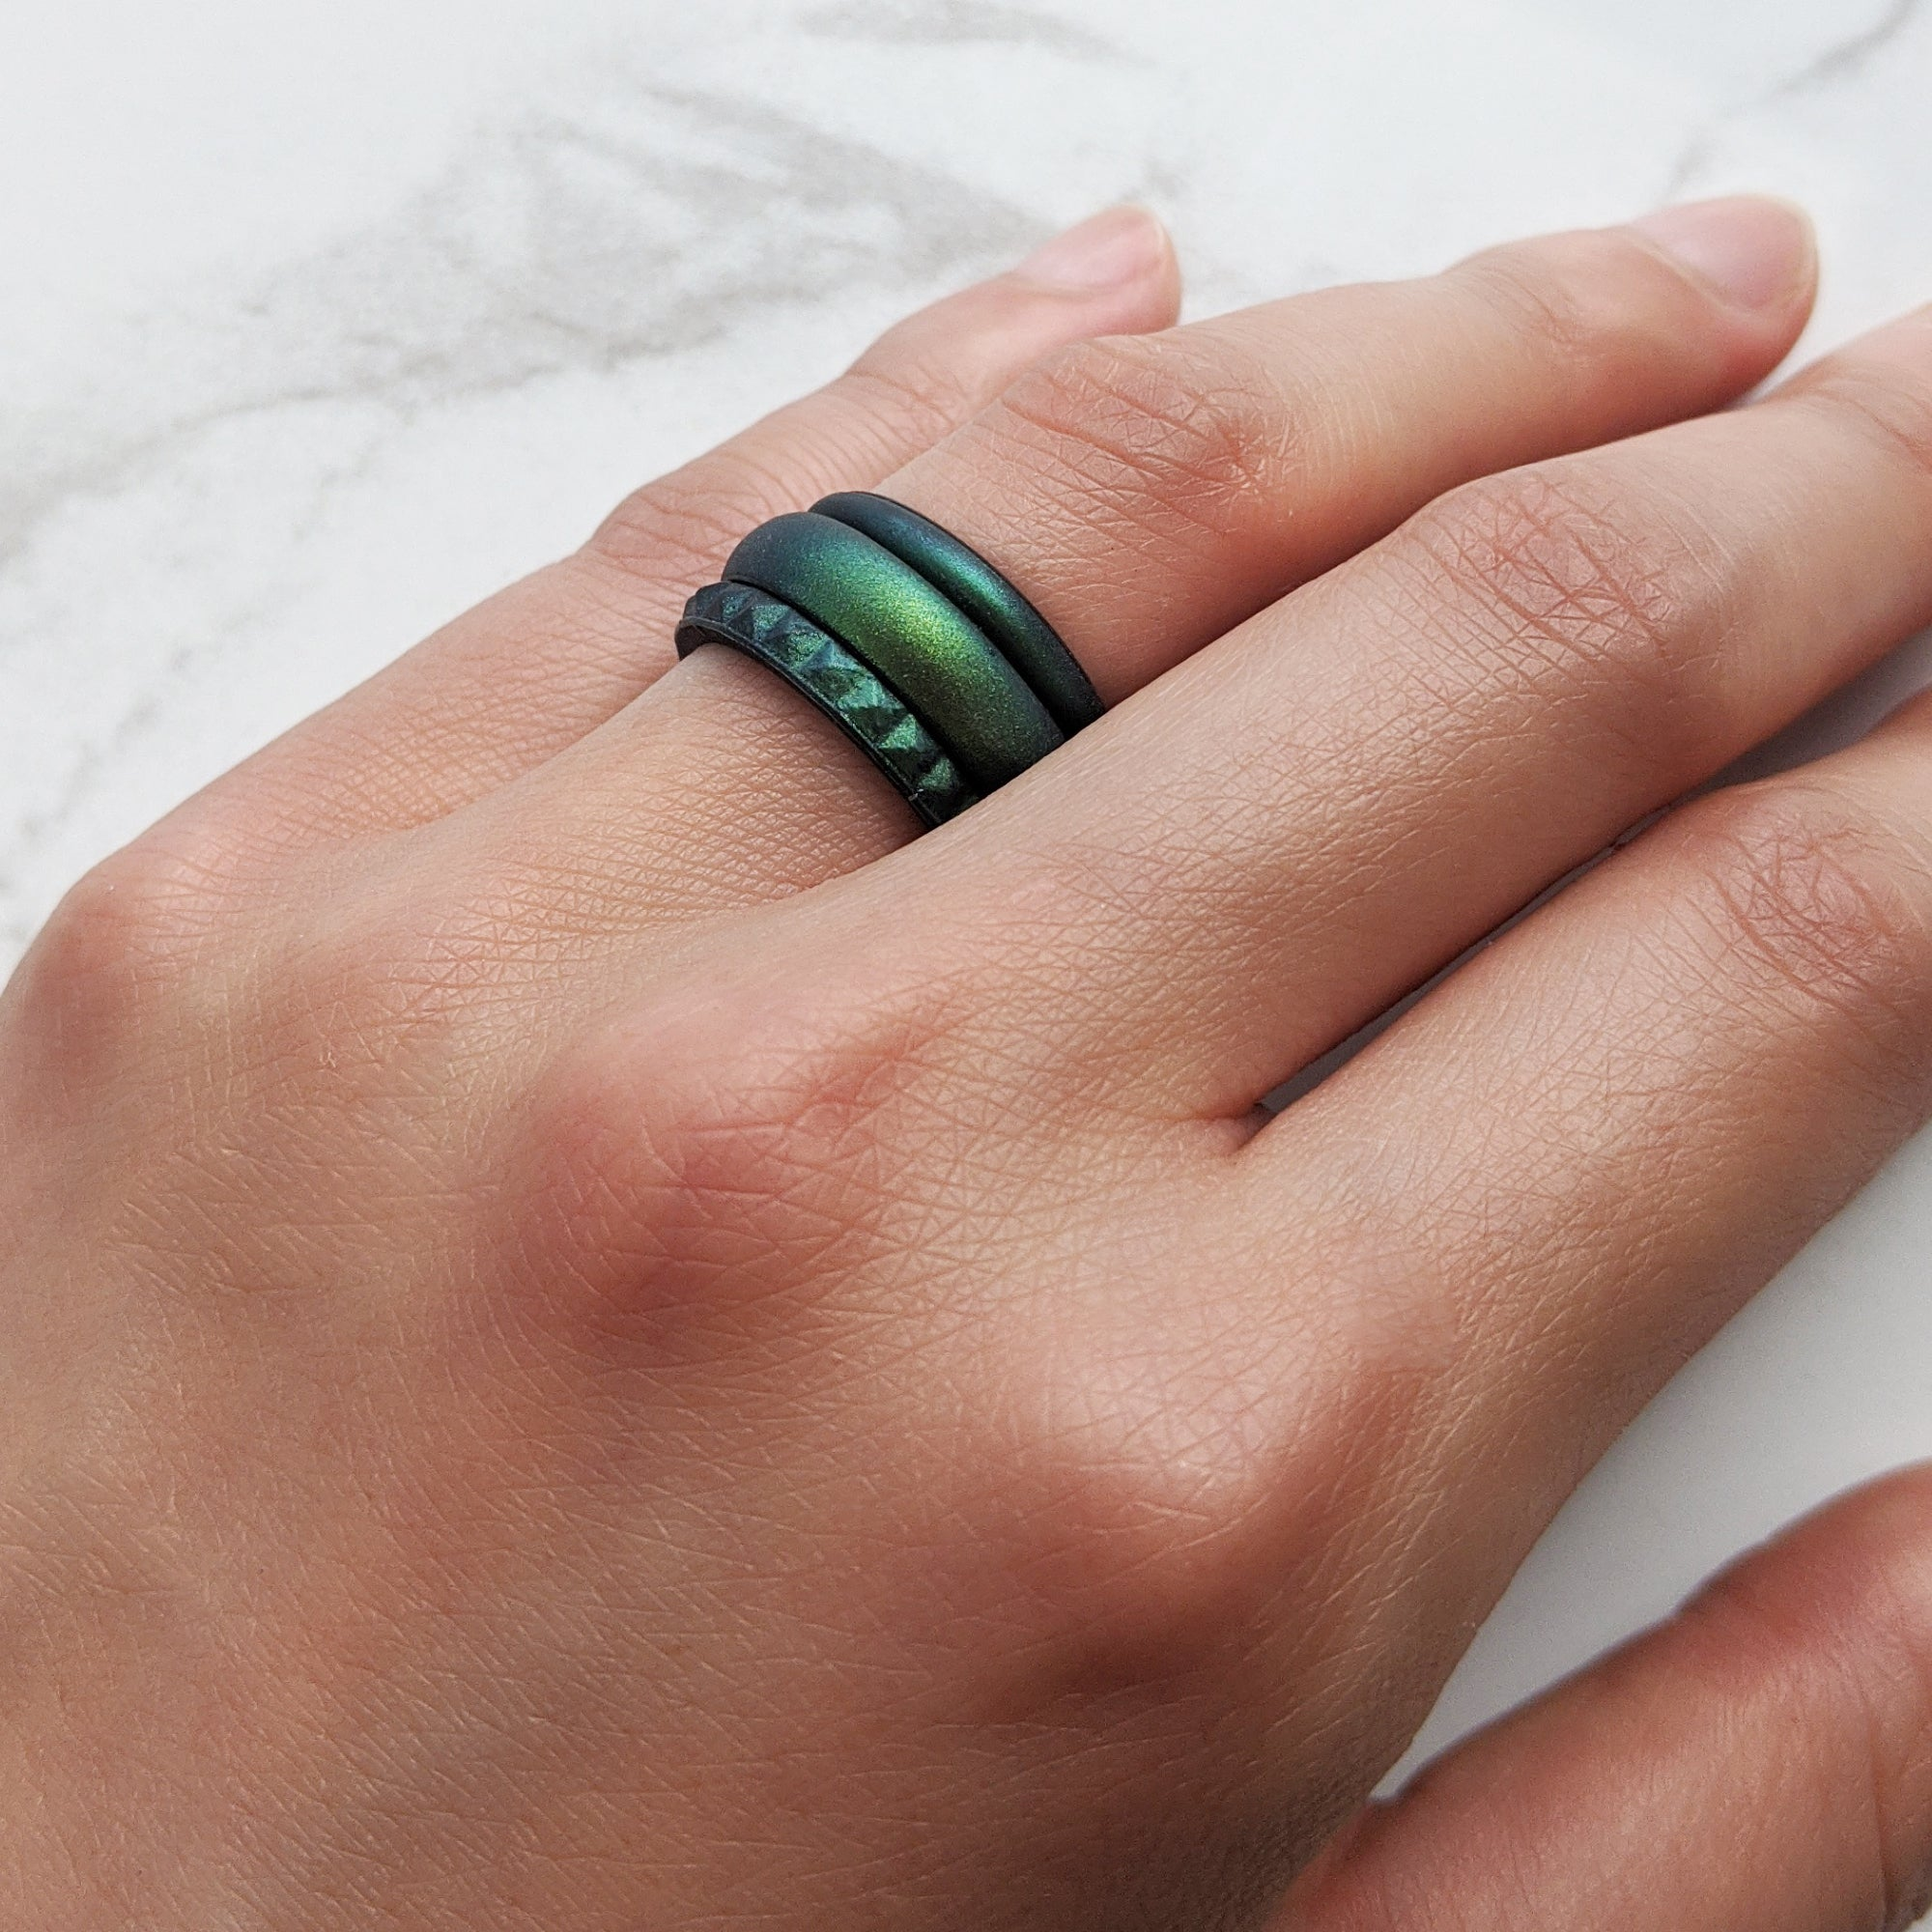 Enchanted Green Pyramid Stackable Slim Thin Silicone Ring Woman